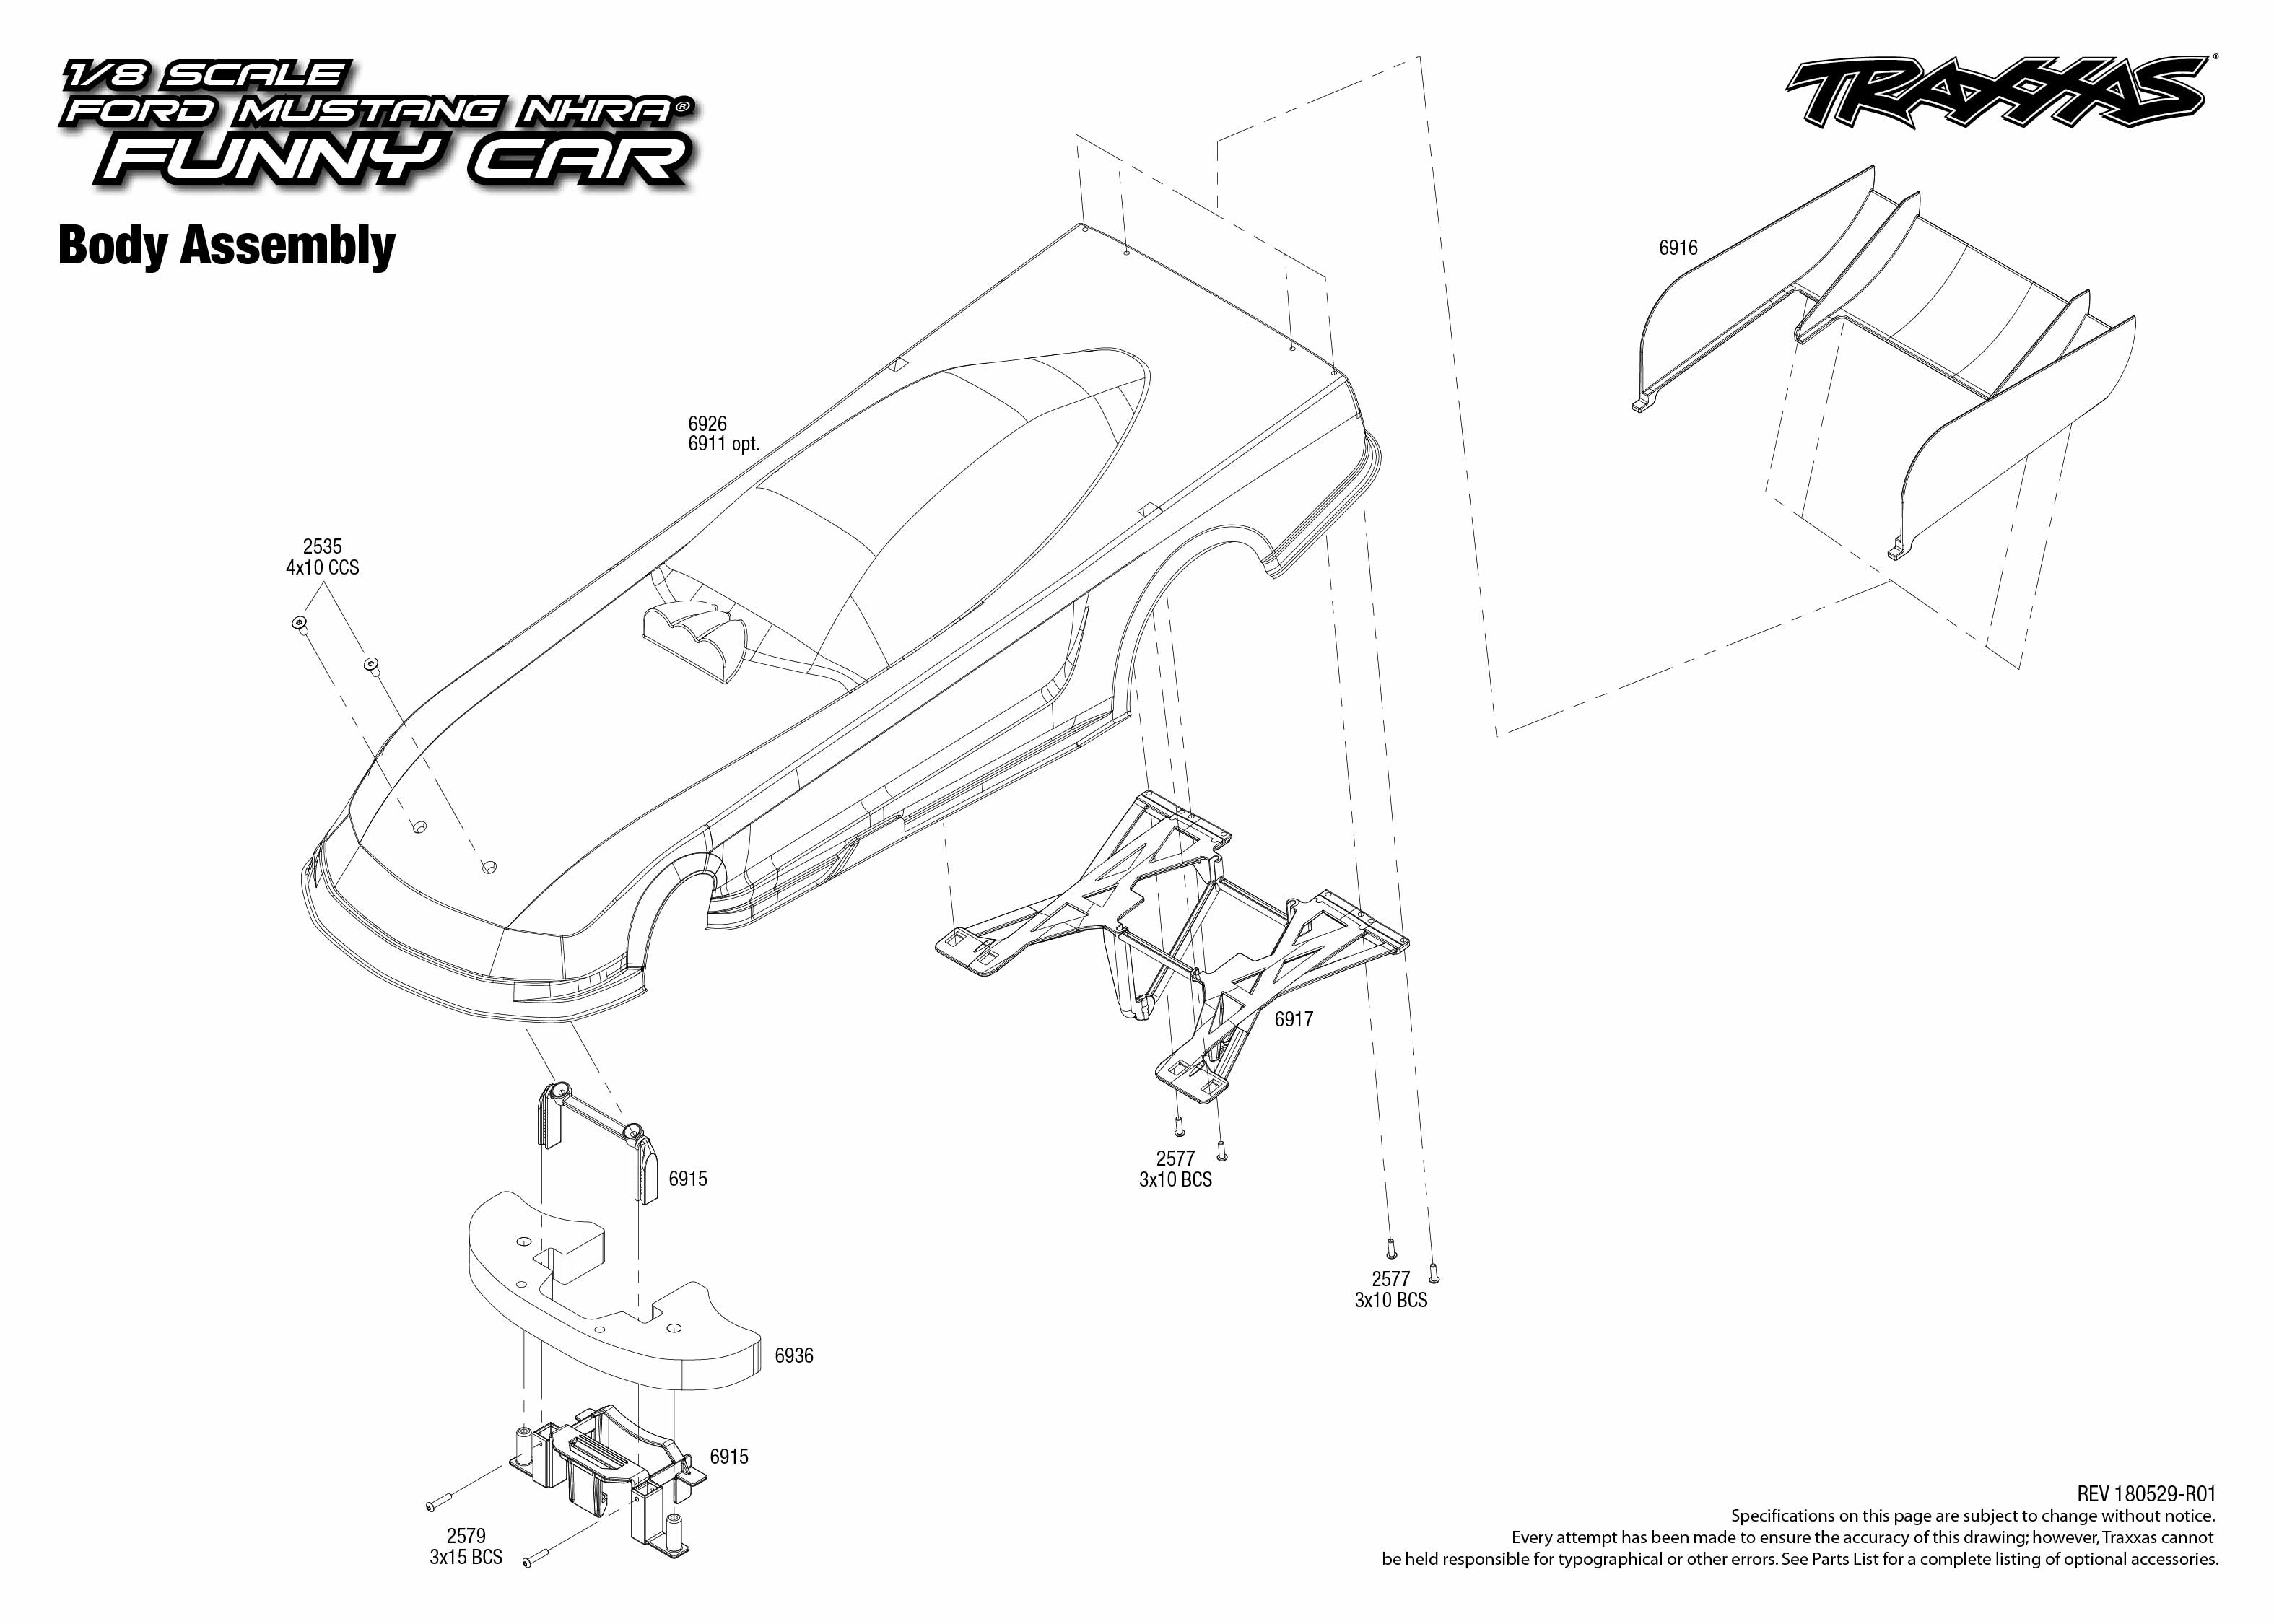 Funny Car 4 Body Assembly Exploded View